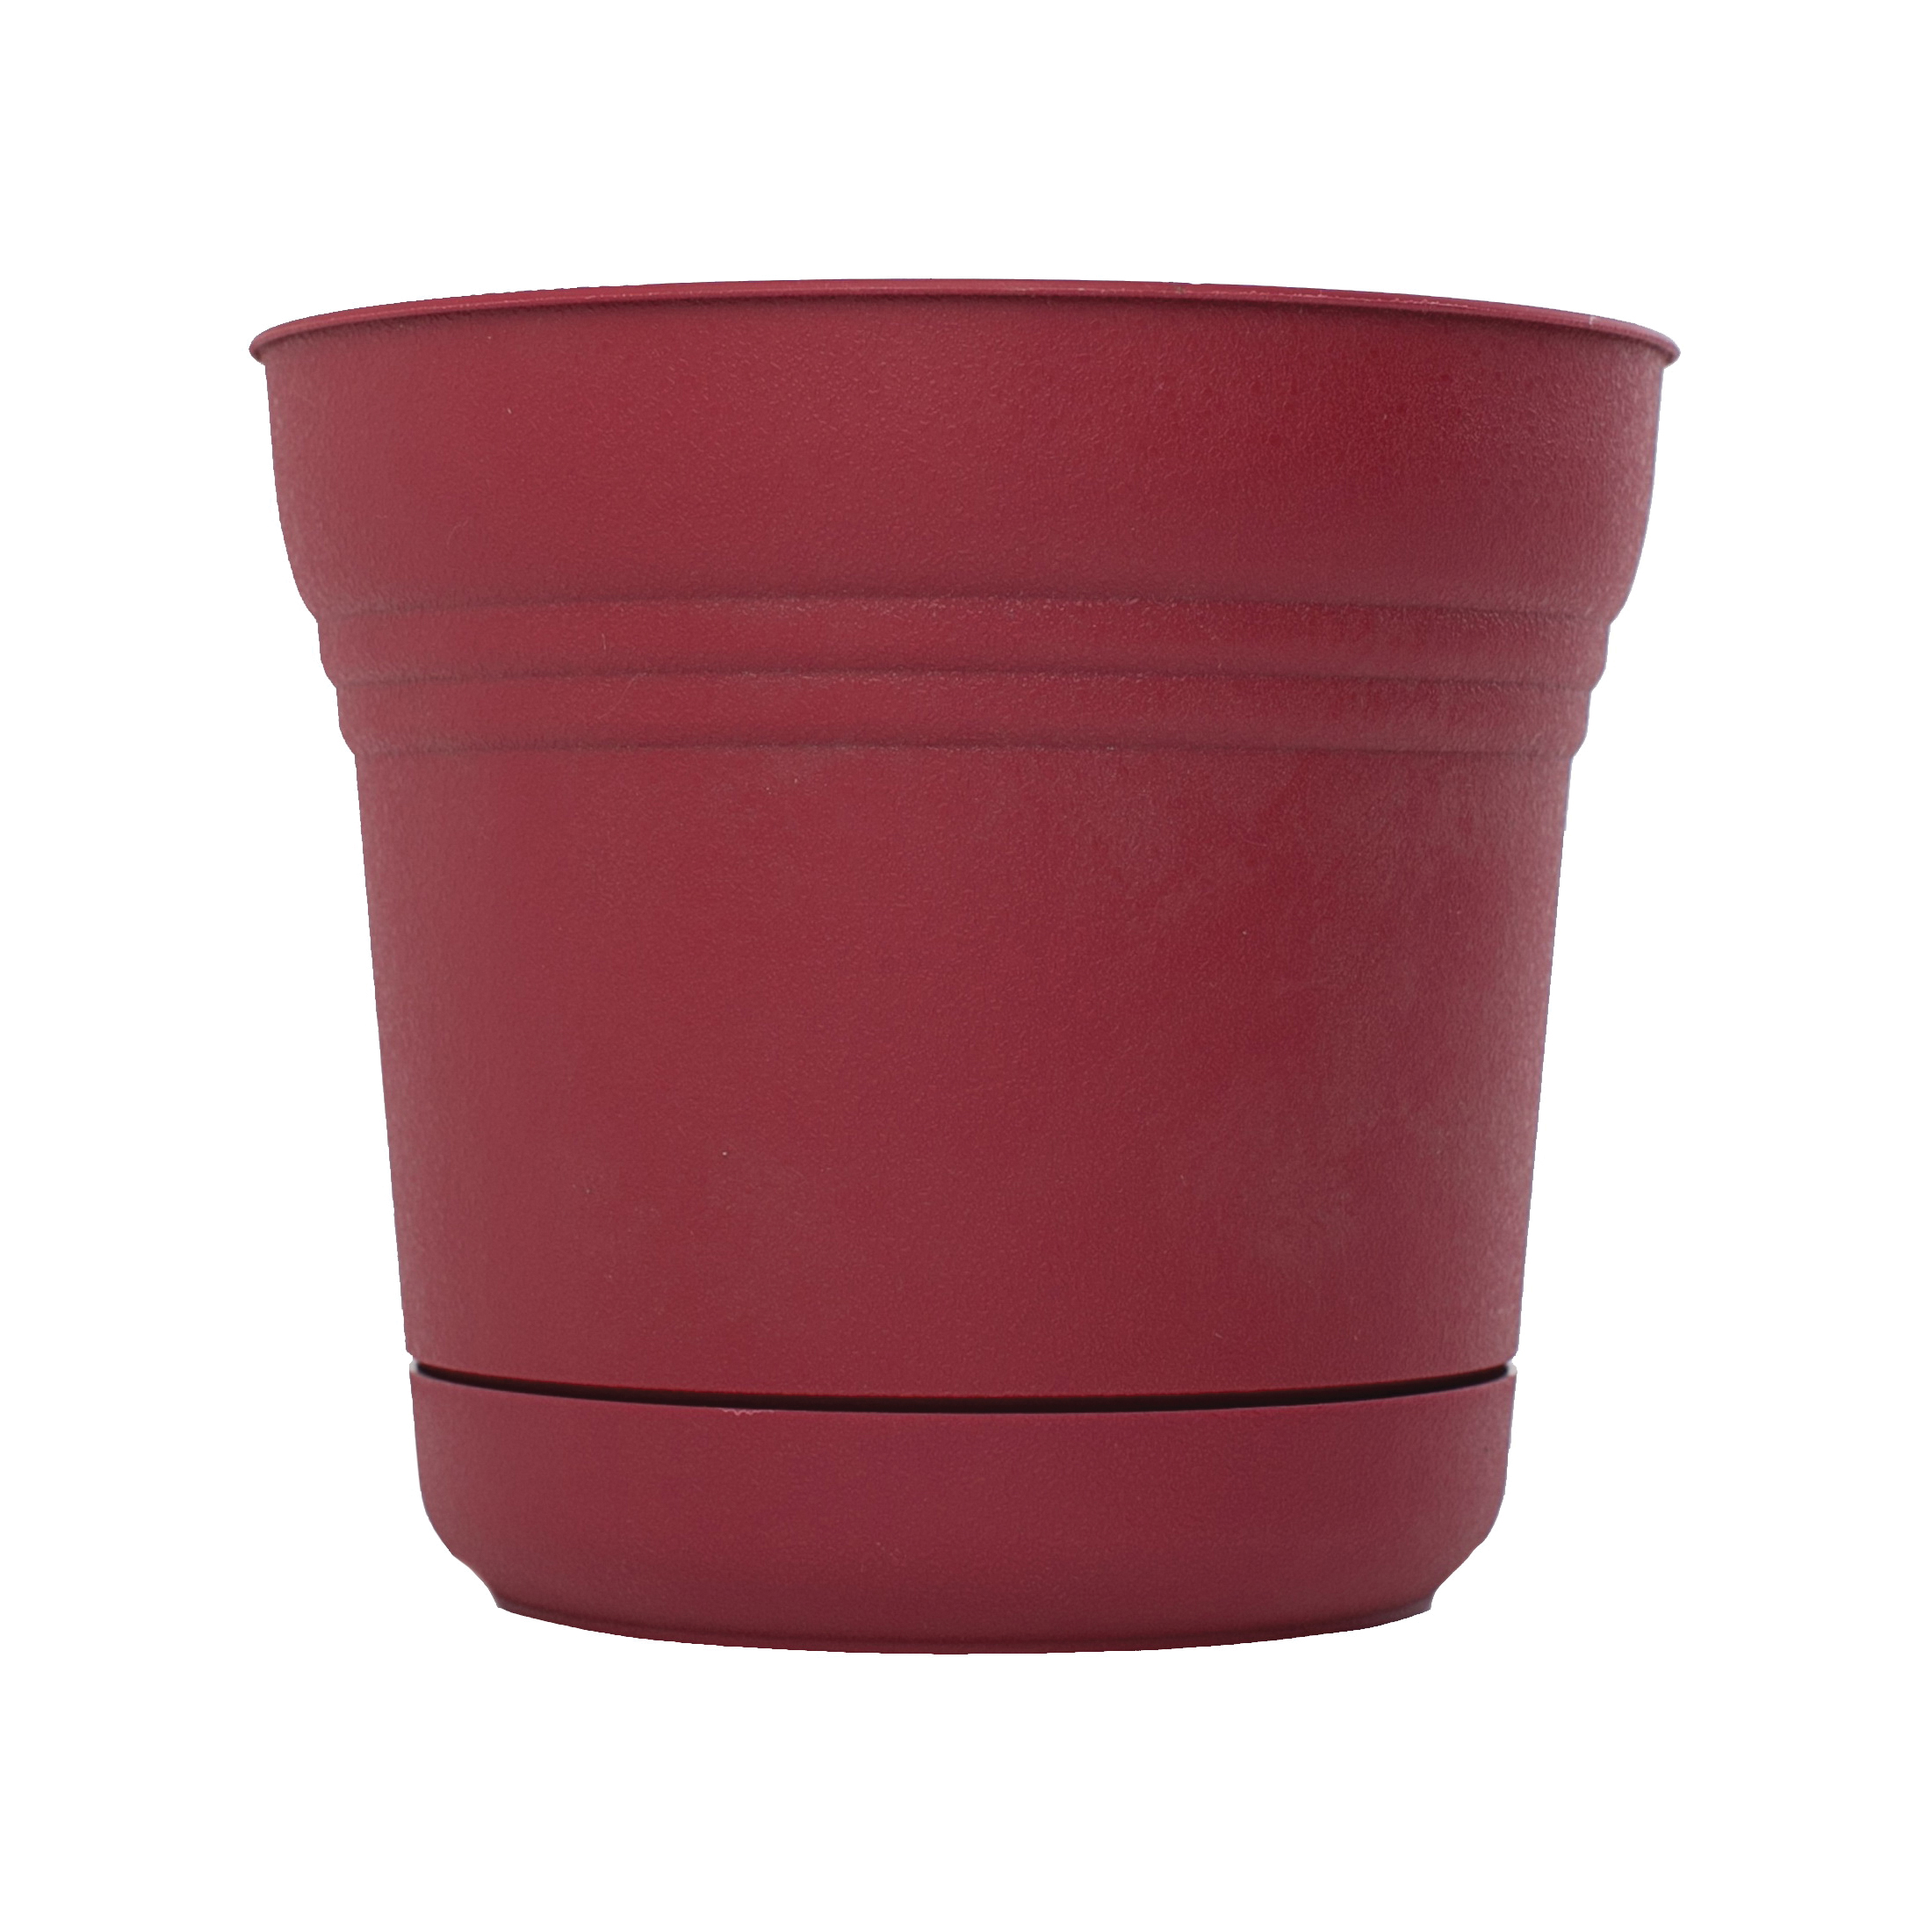 Picture of Bloem Saturn SP1212 Planter, 10.8 in W, Polypropylene, Union Red